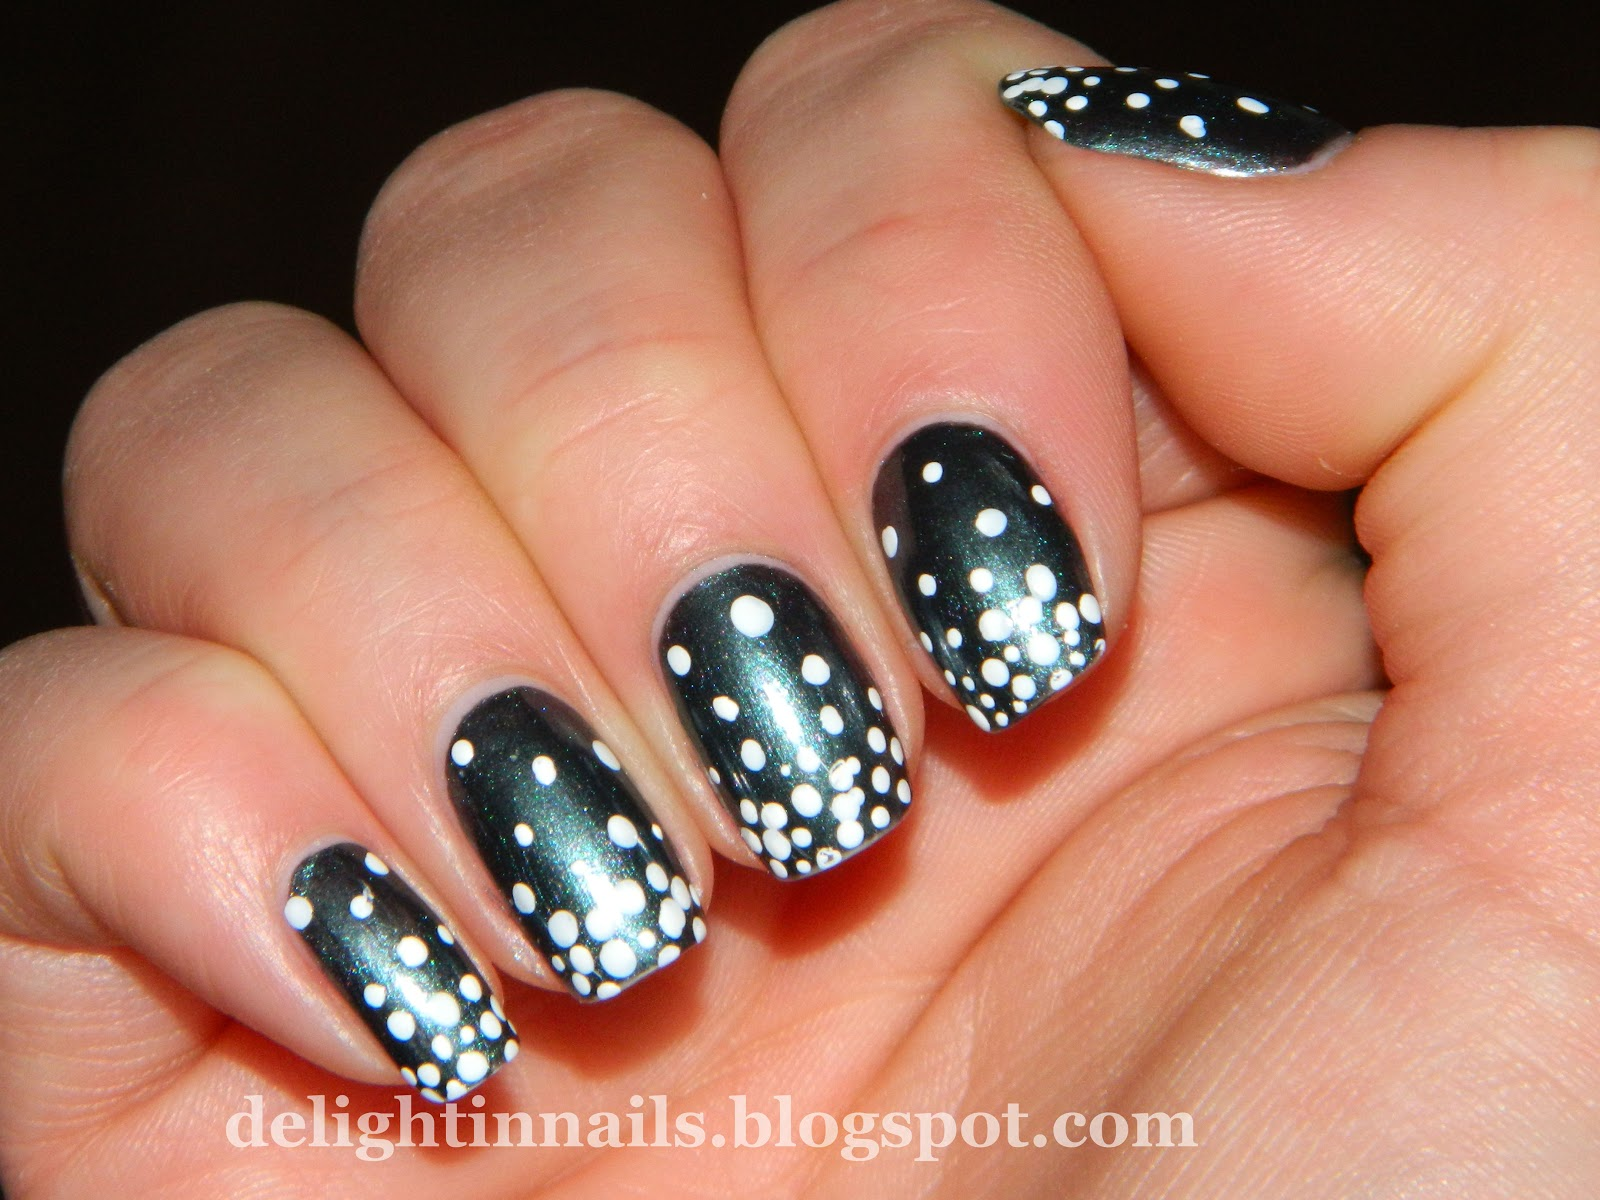 Delight In Nails: 10 Day Holiday Nail Art Challenge: Day 2 - Snow ...